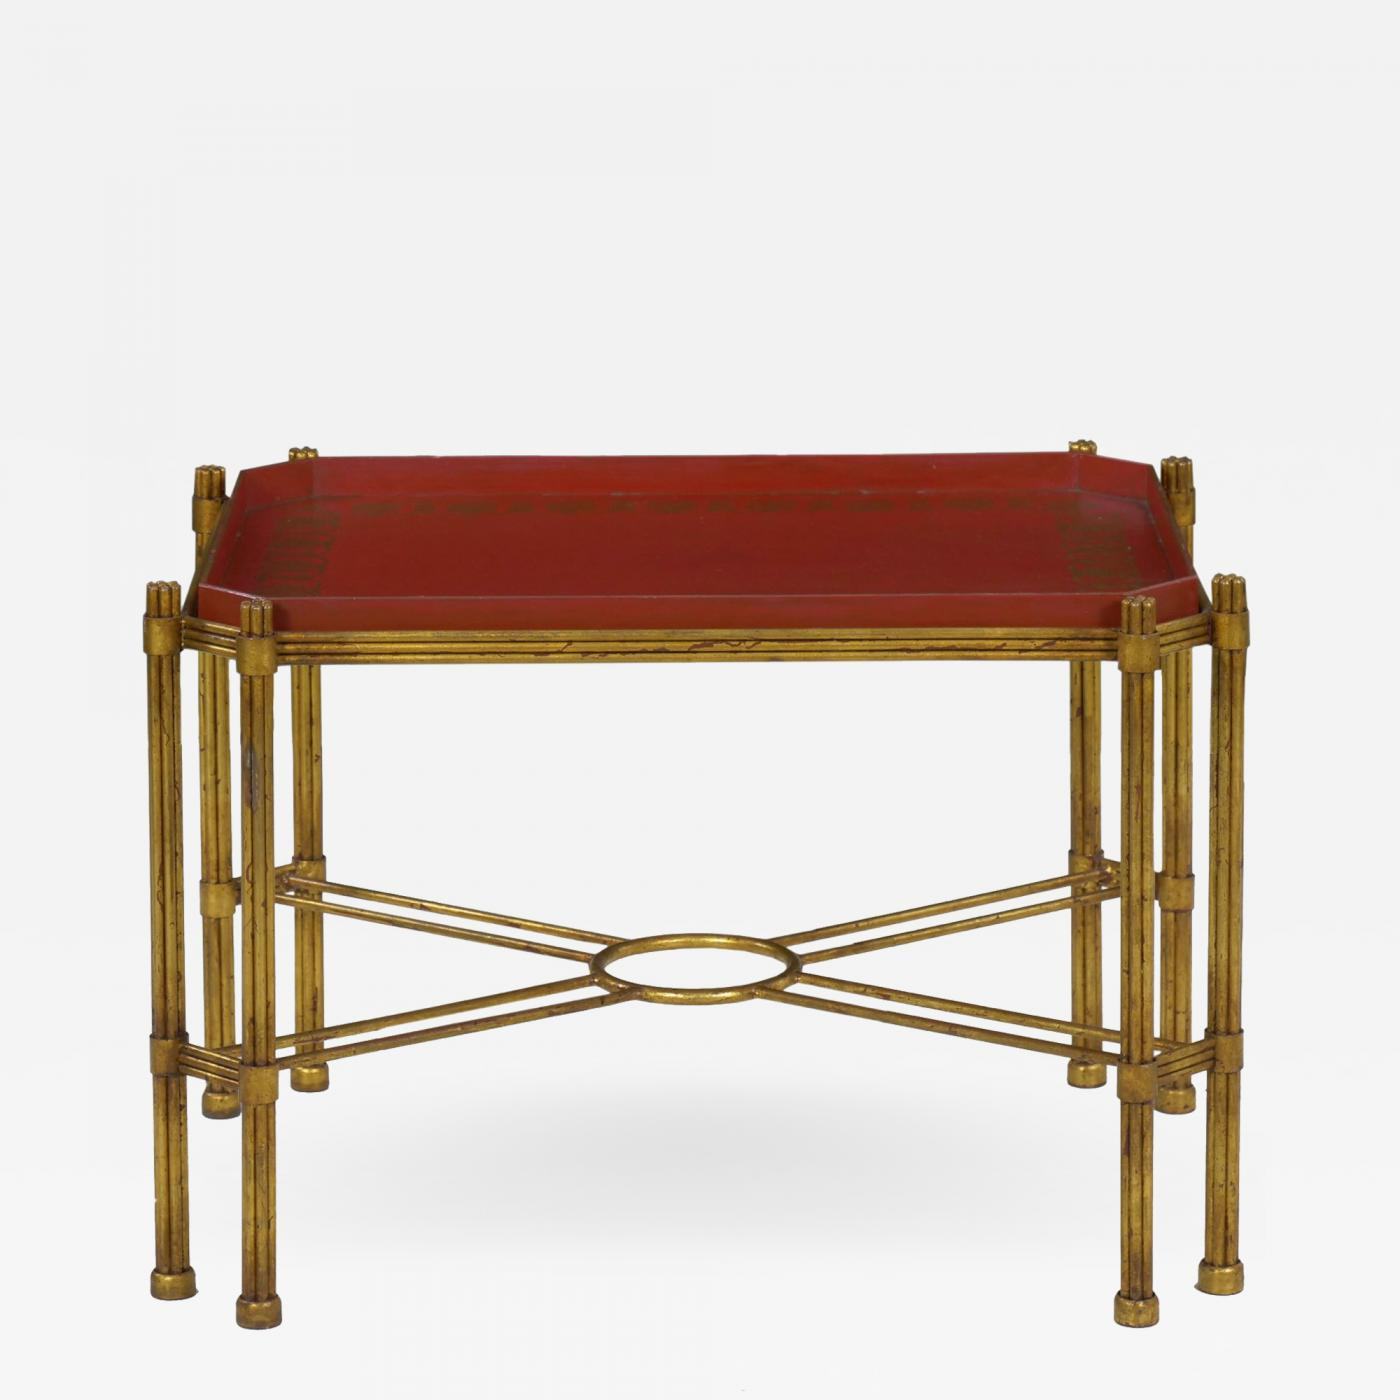 Phenomenal Vintage Gilt Iron Cocktail Table With Red Painted Wooden Tray Bralicious Painted Fabric Chair Ideas Braliciousco